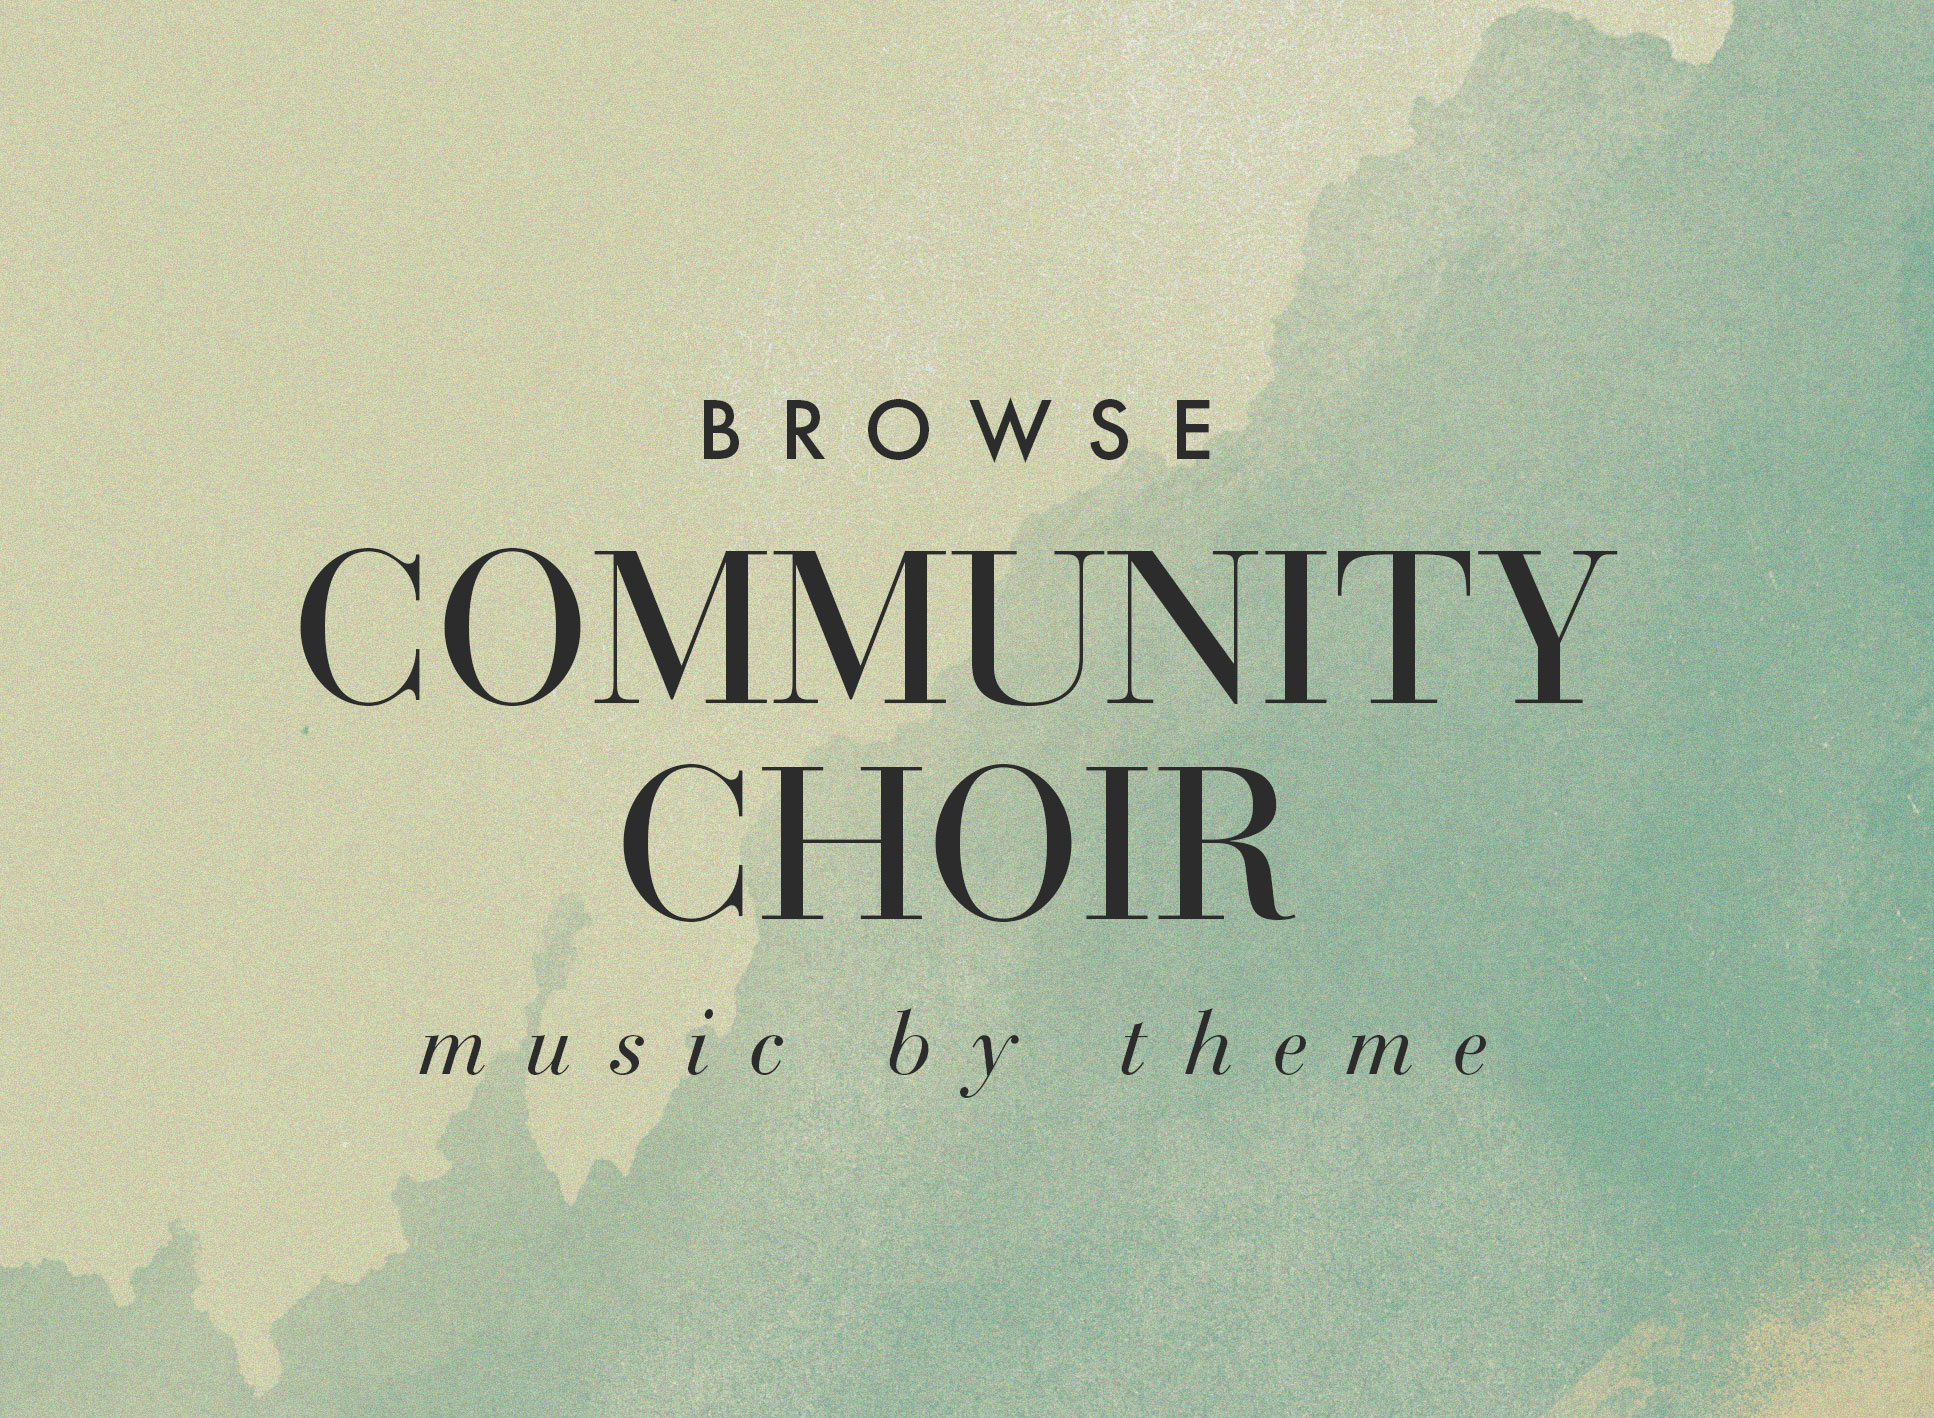 Browse Earth, sea, and sky themed music for community choirs.